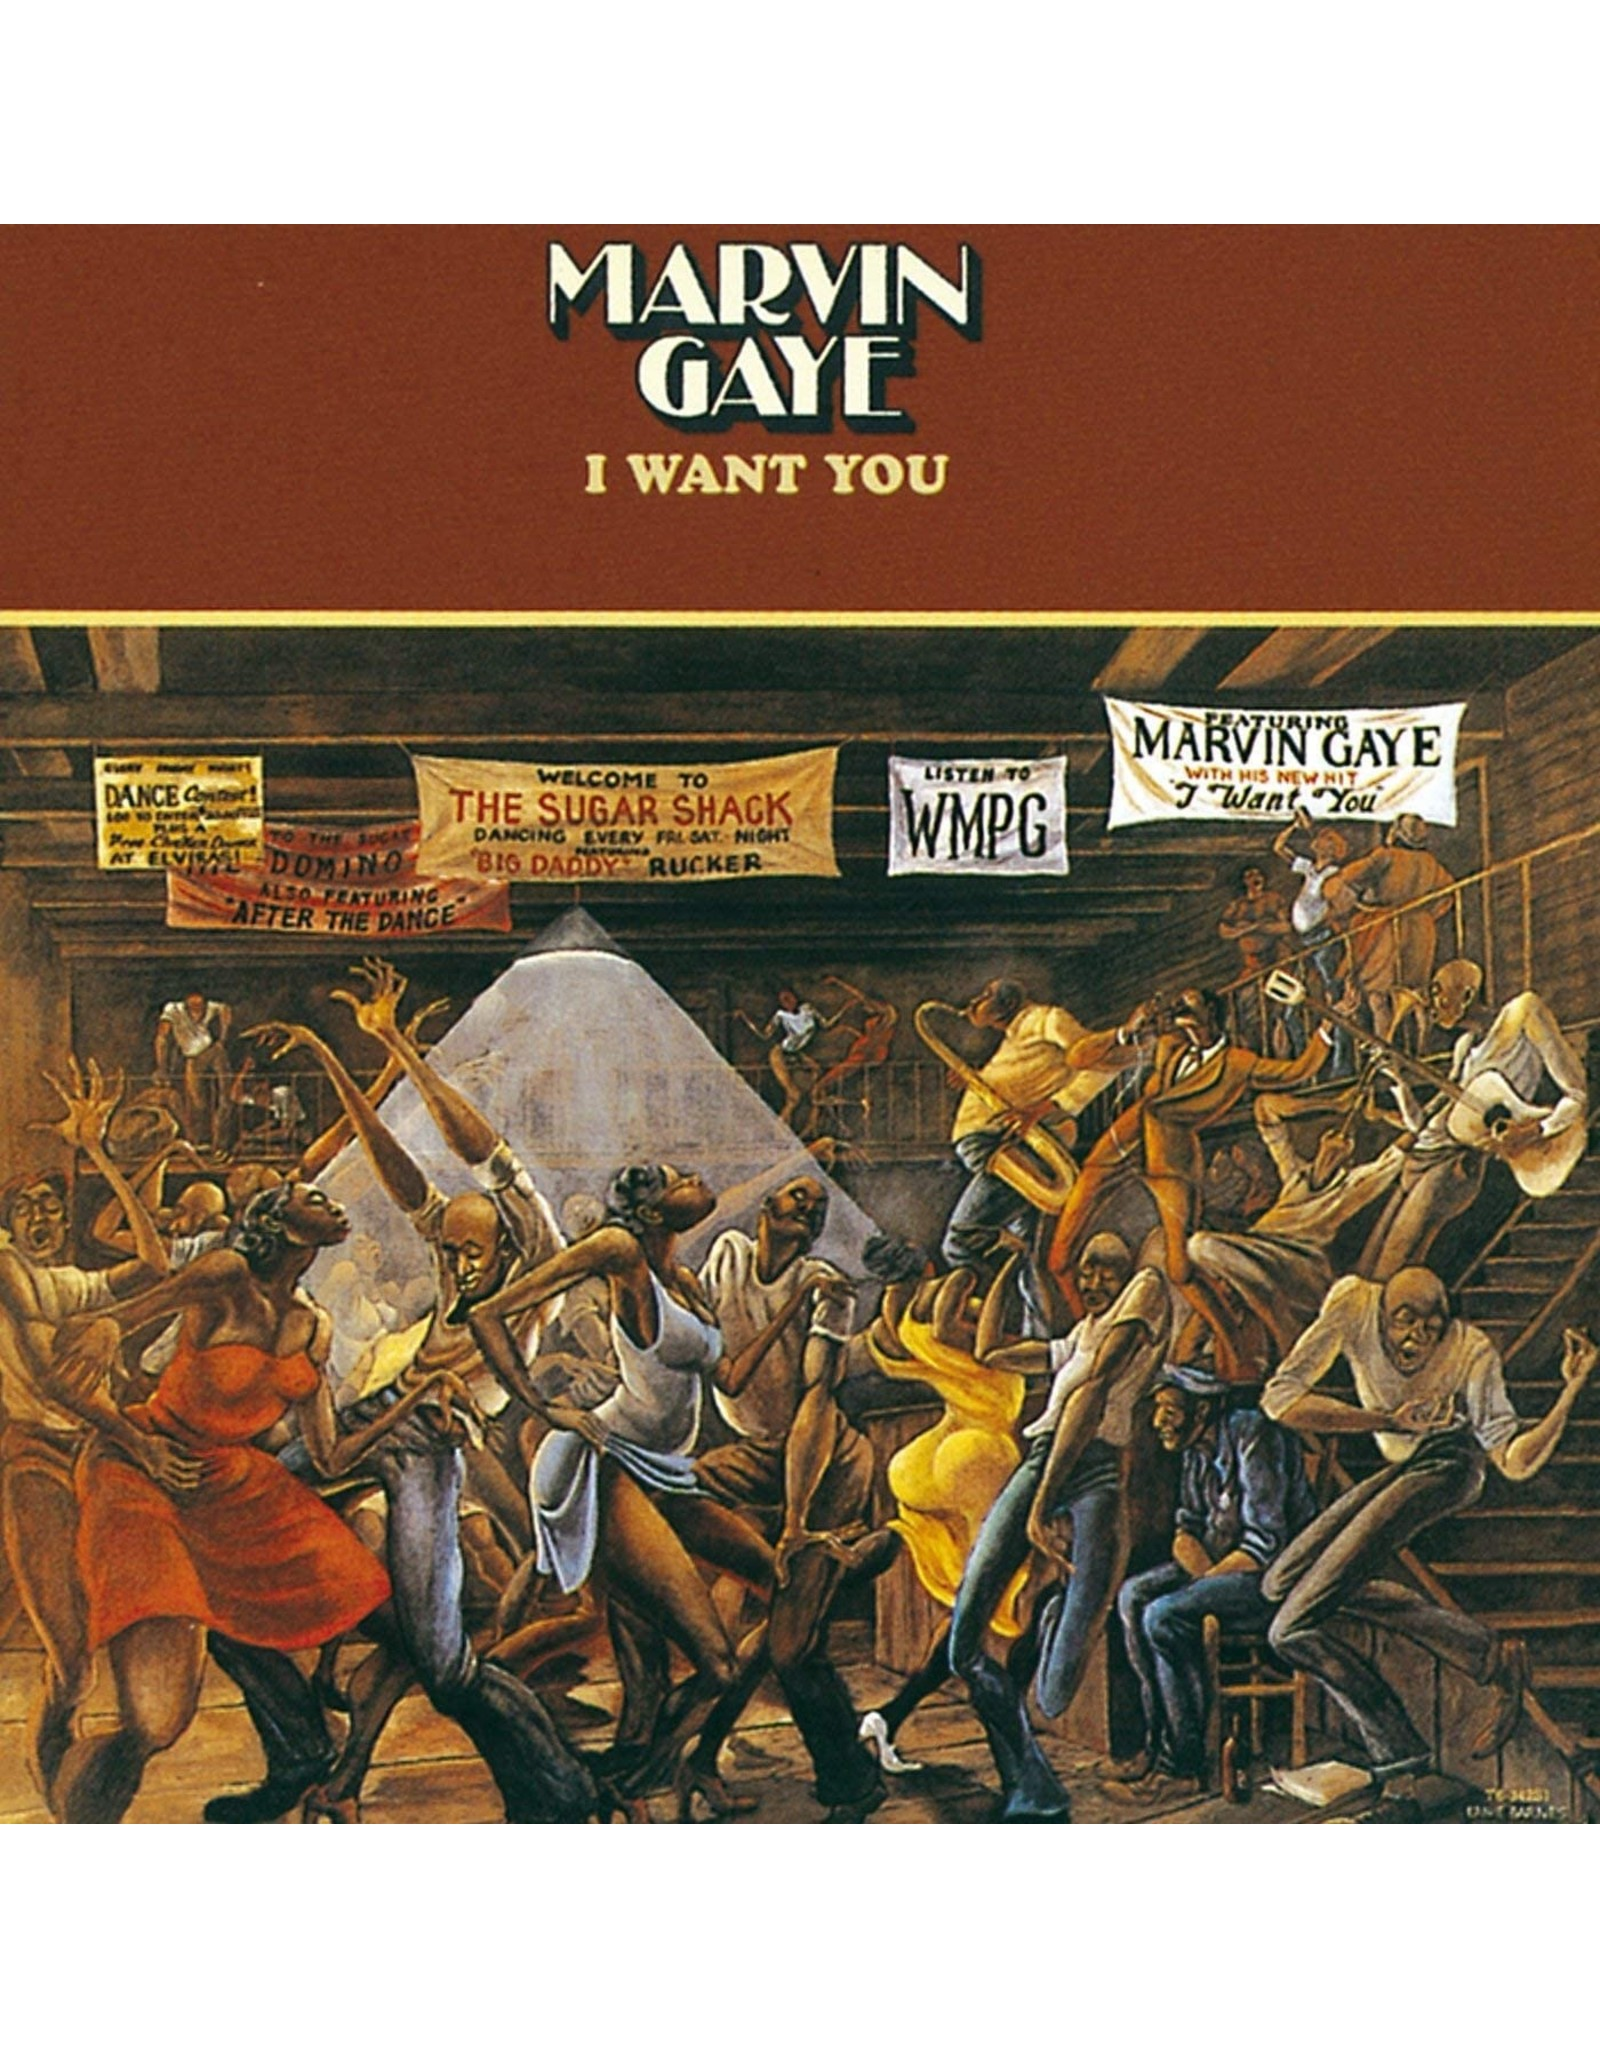 Marvin Gaye - I Want You (UK Edition)